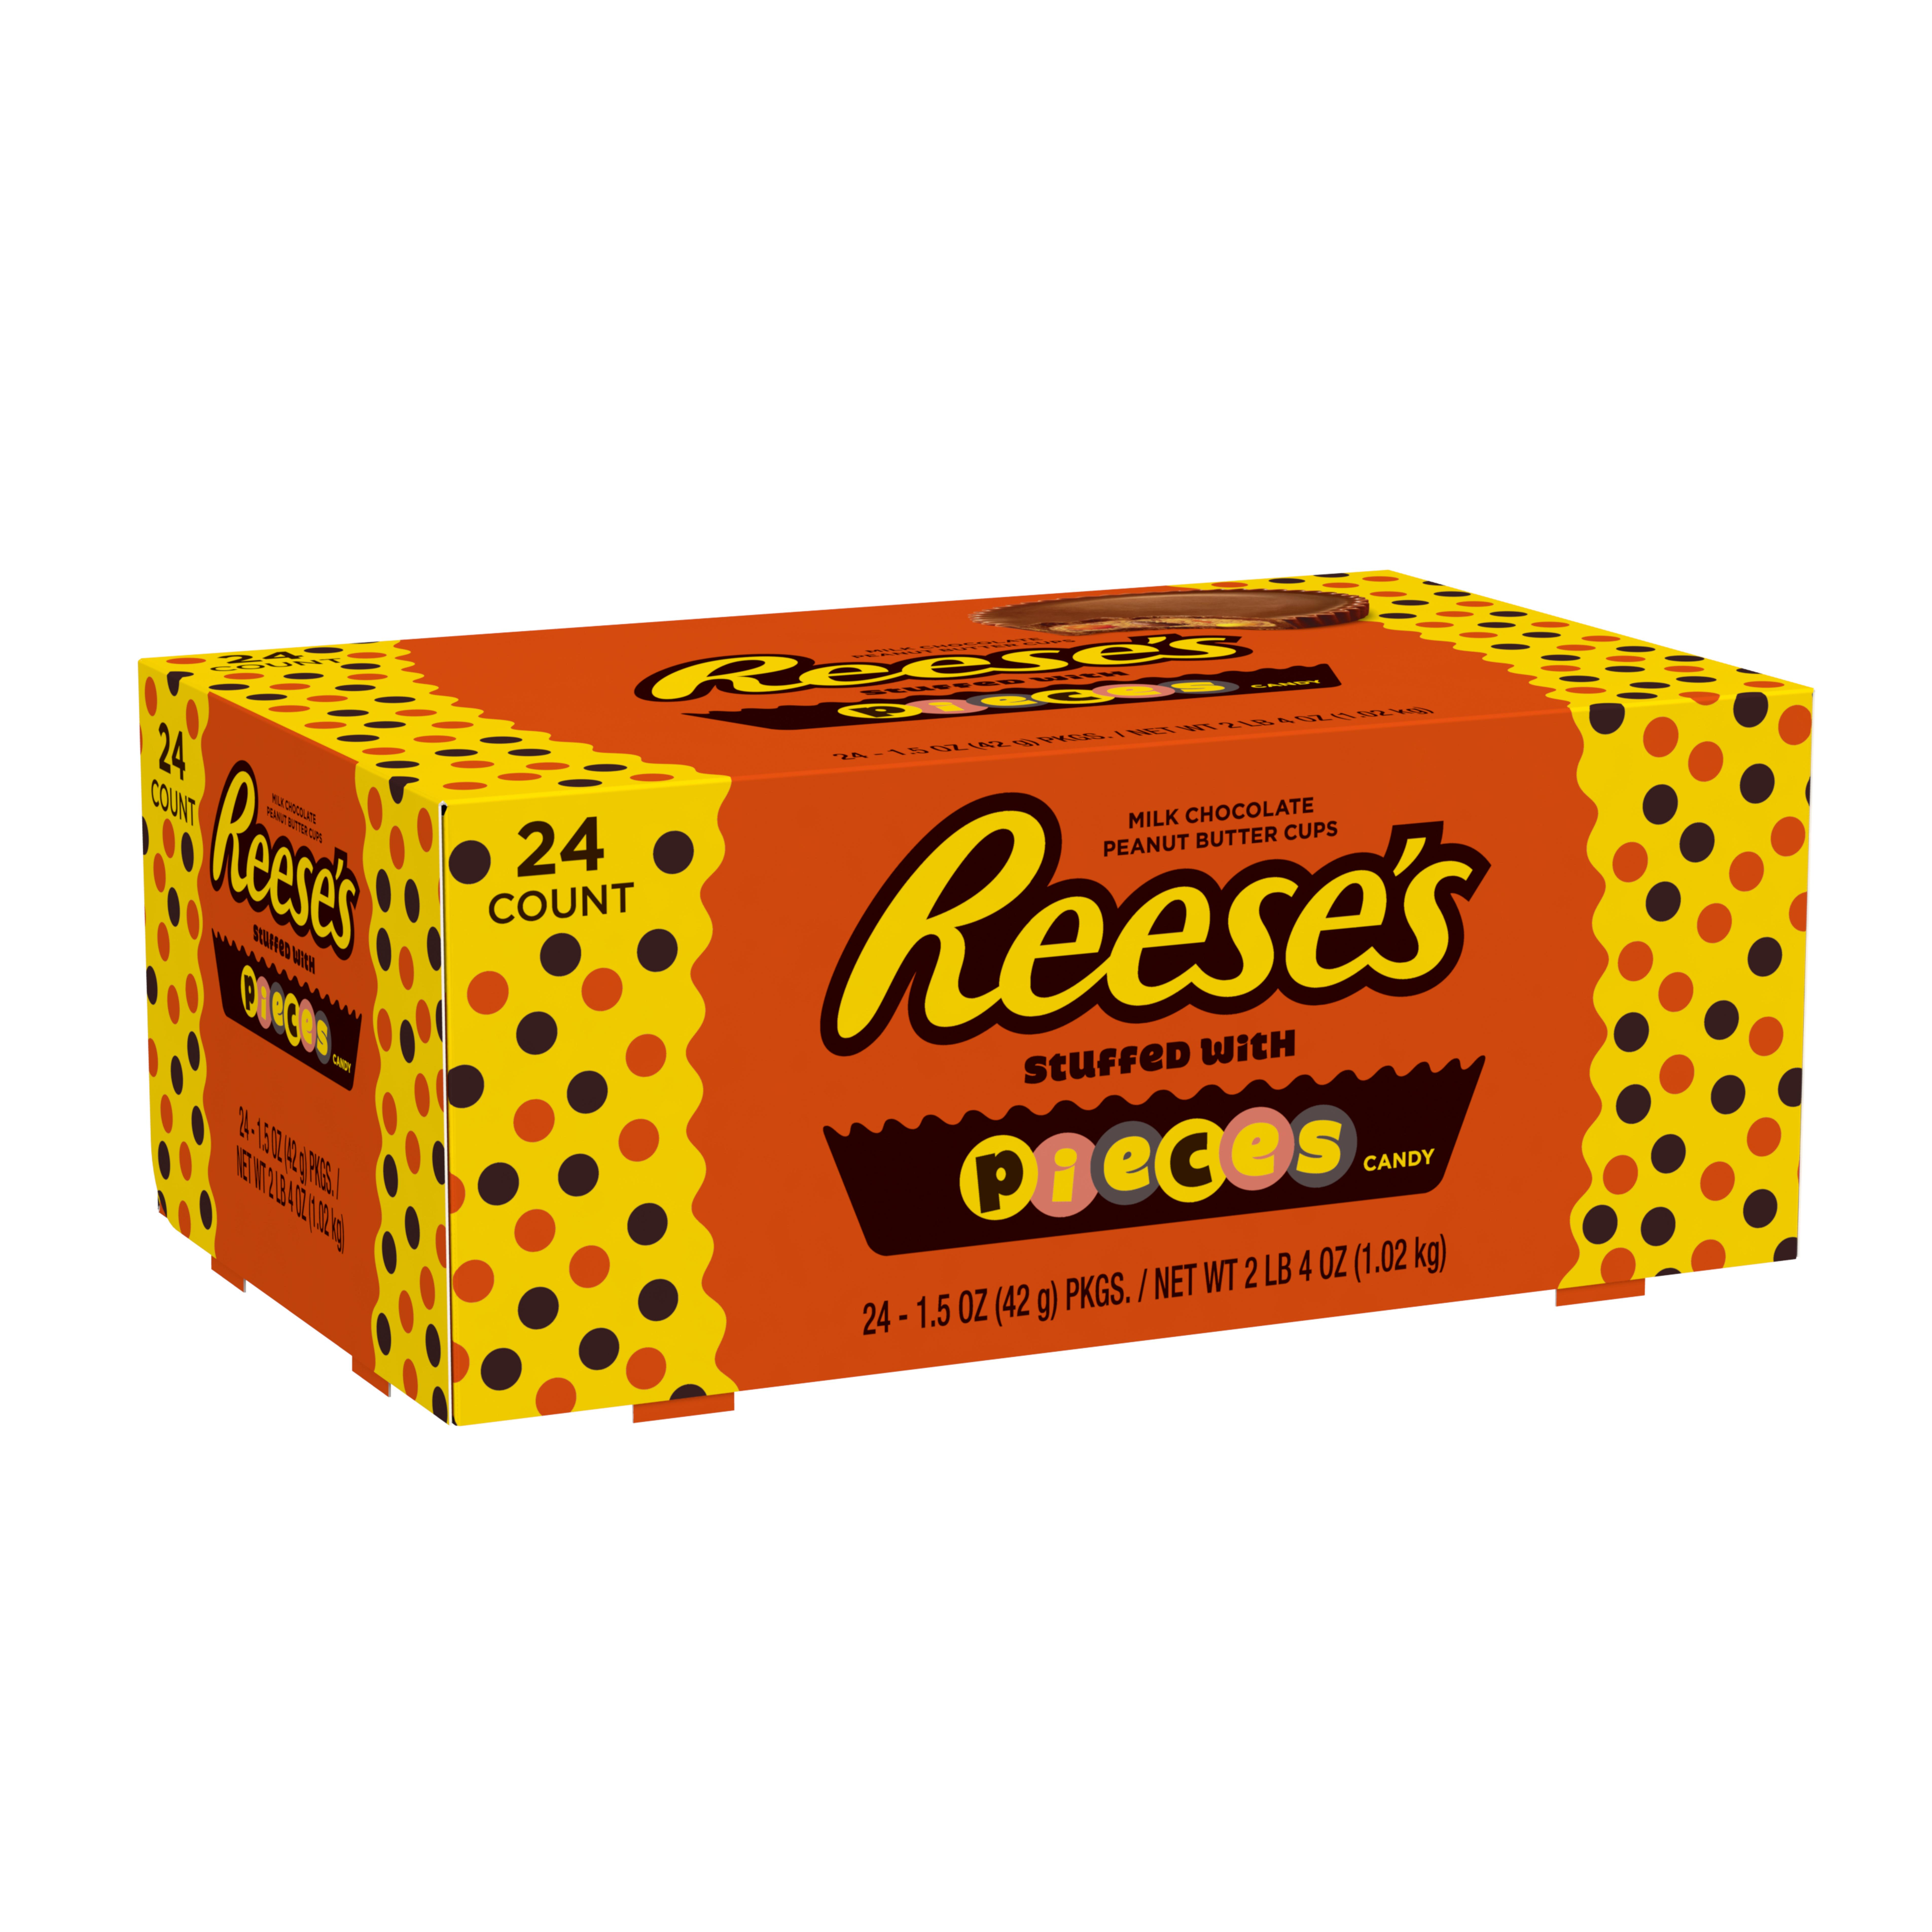 Reese's, Peanut Butter Cups with Pieces Chocolate Candy, 36 Oz (Pack of 24)